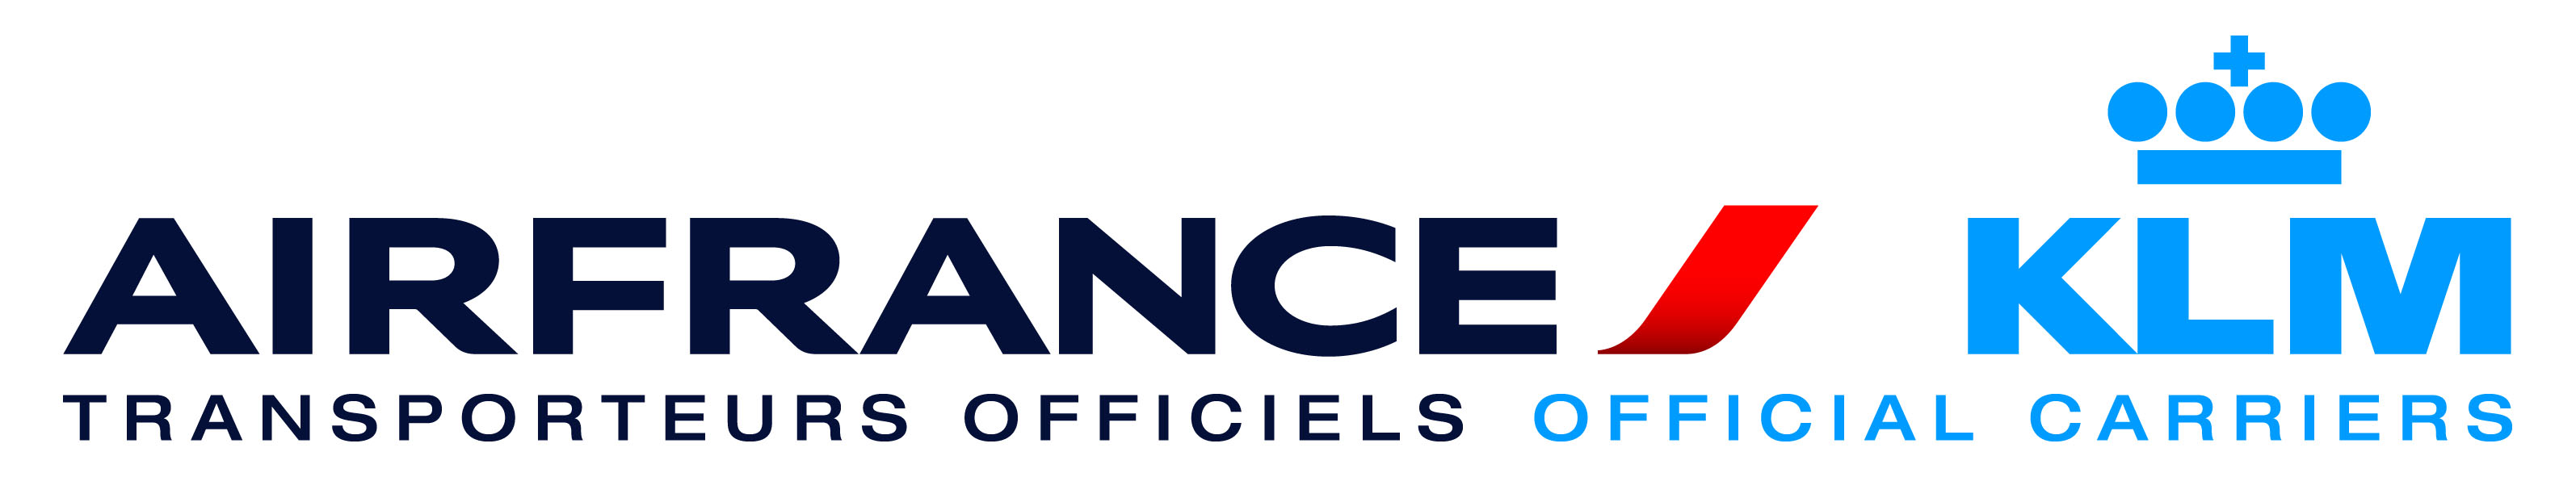 Air France Communicating Museum Conference Paris - Air France Logo PNG